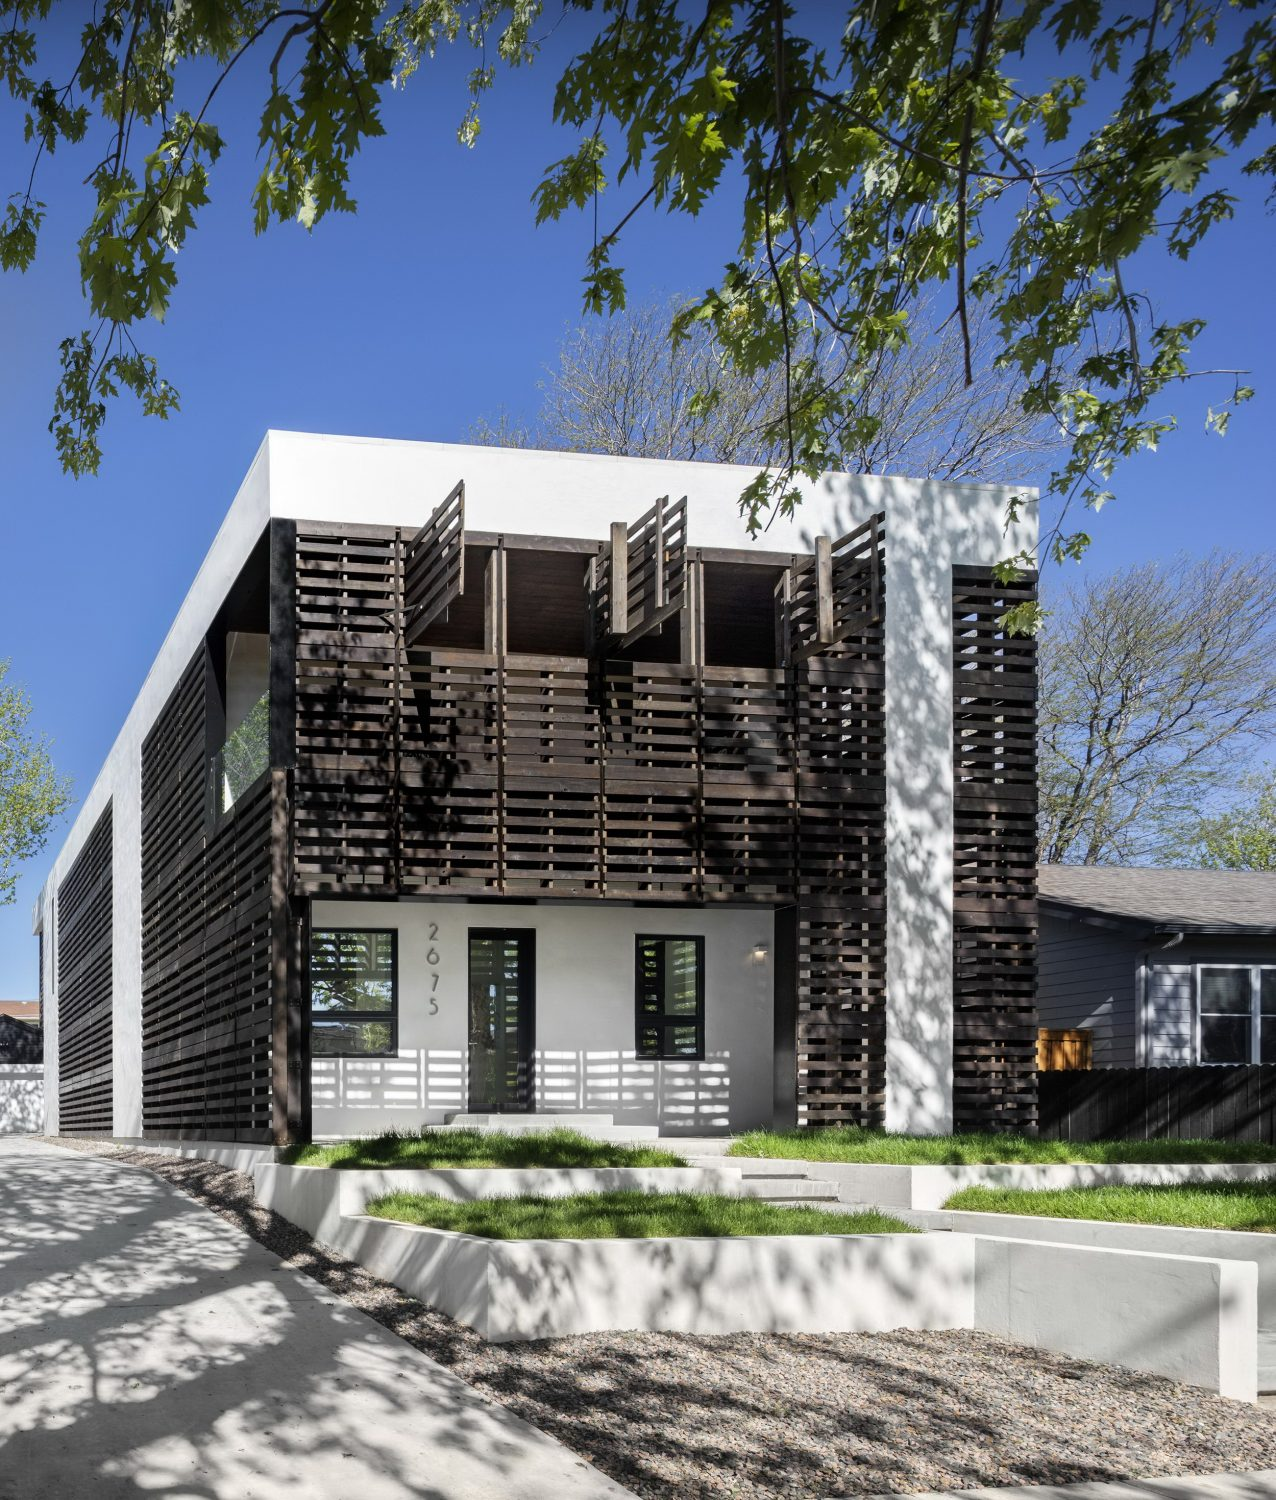 Denver Pallet House by Meridian 105 Architecture